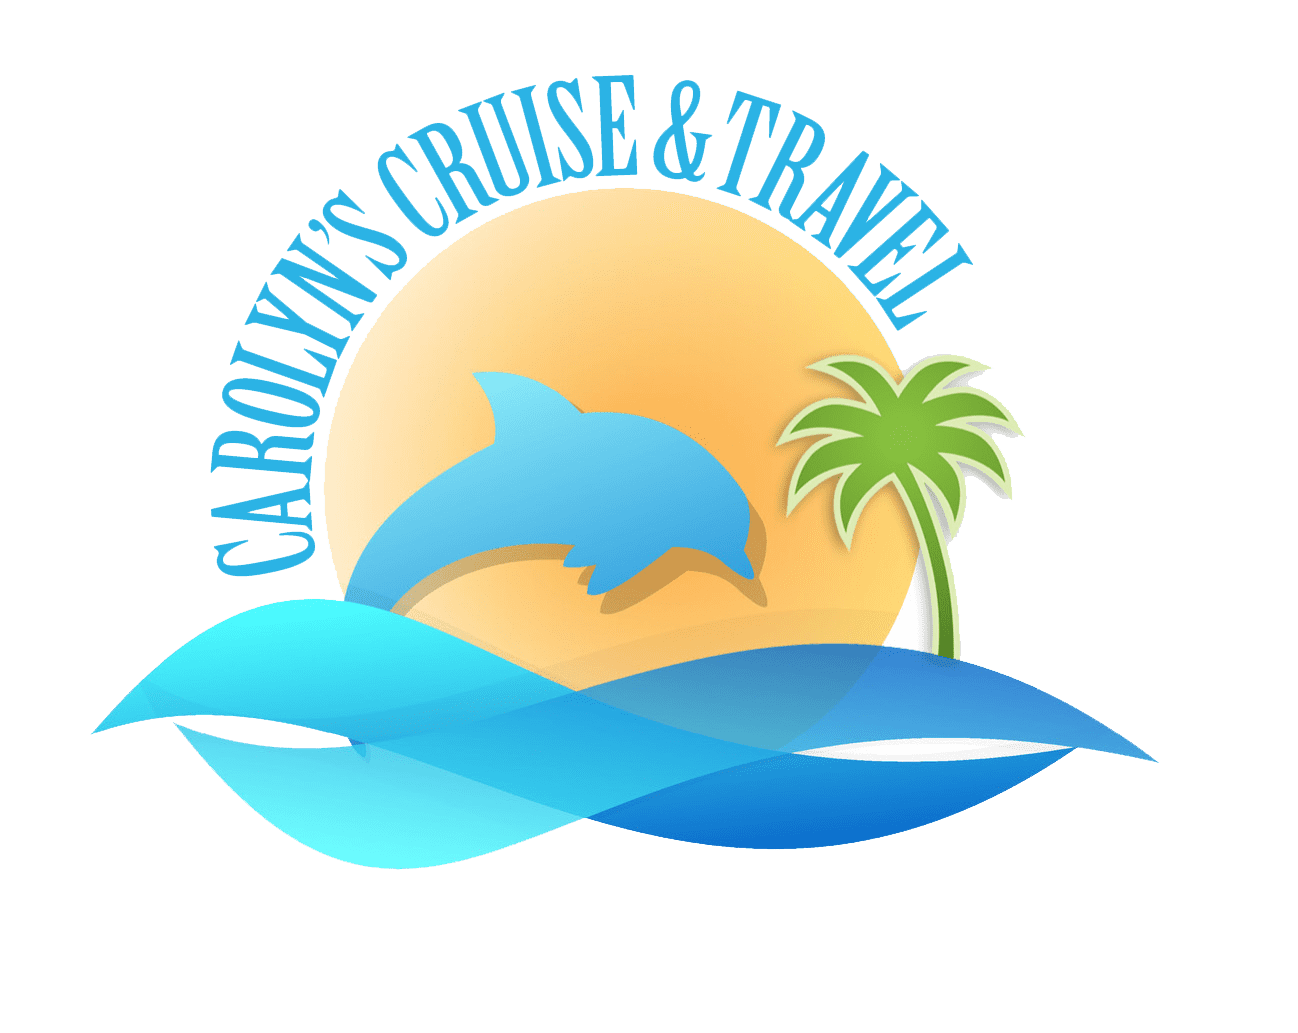 Carolyn's Cruise and Travel